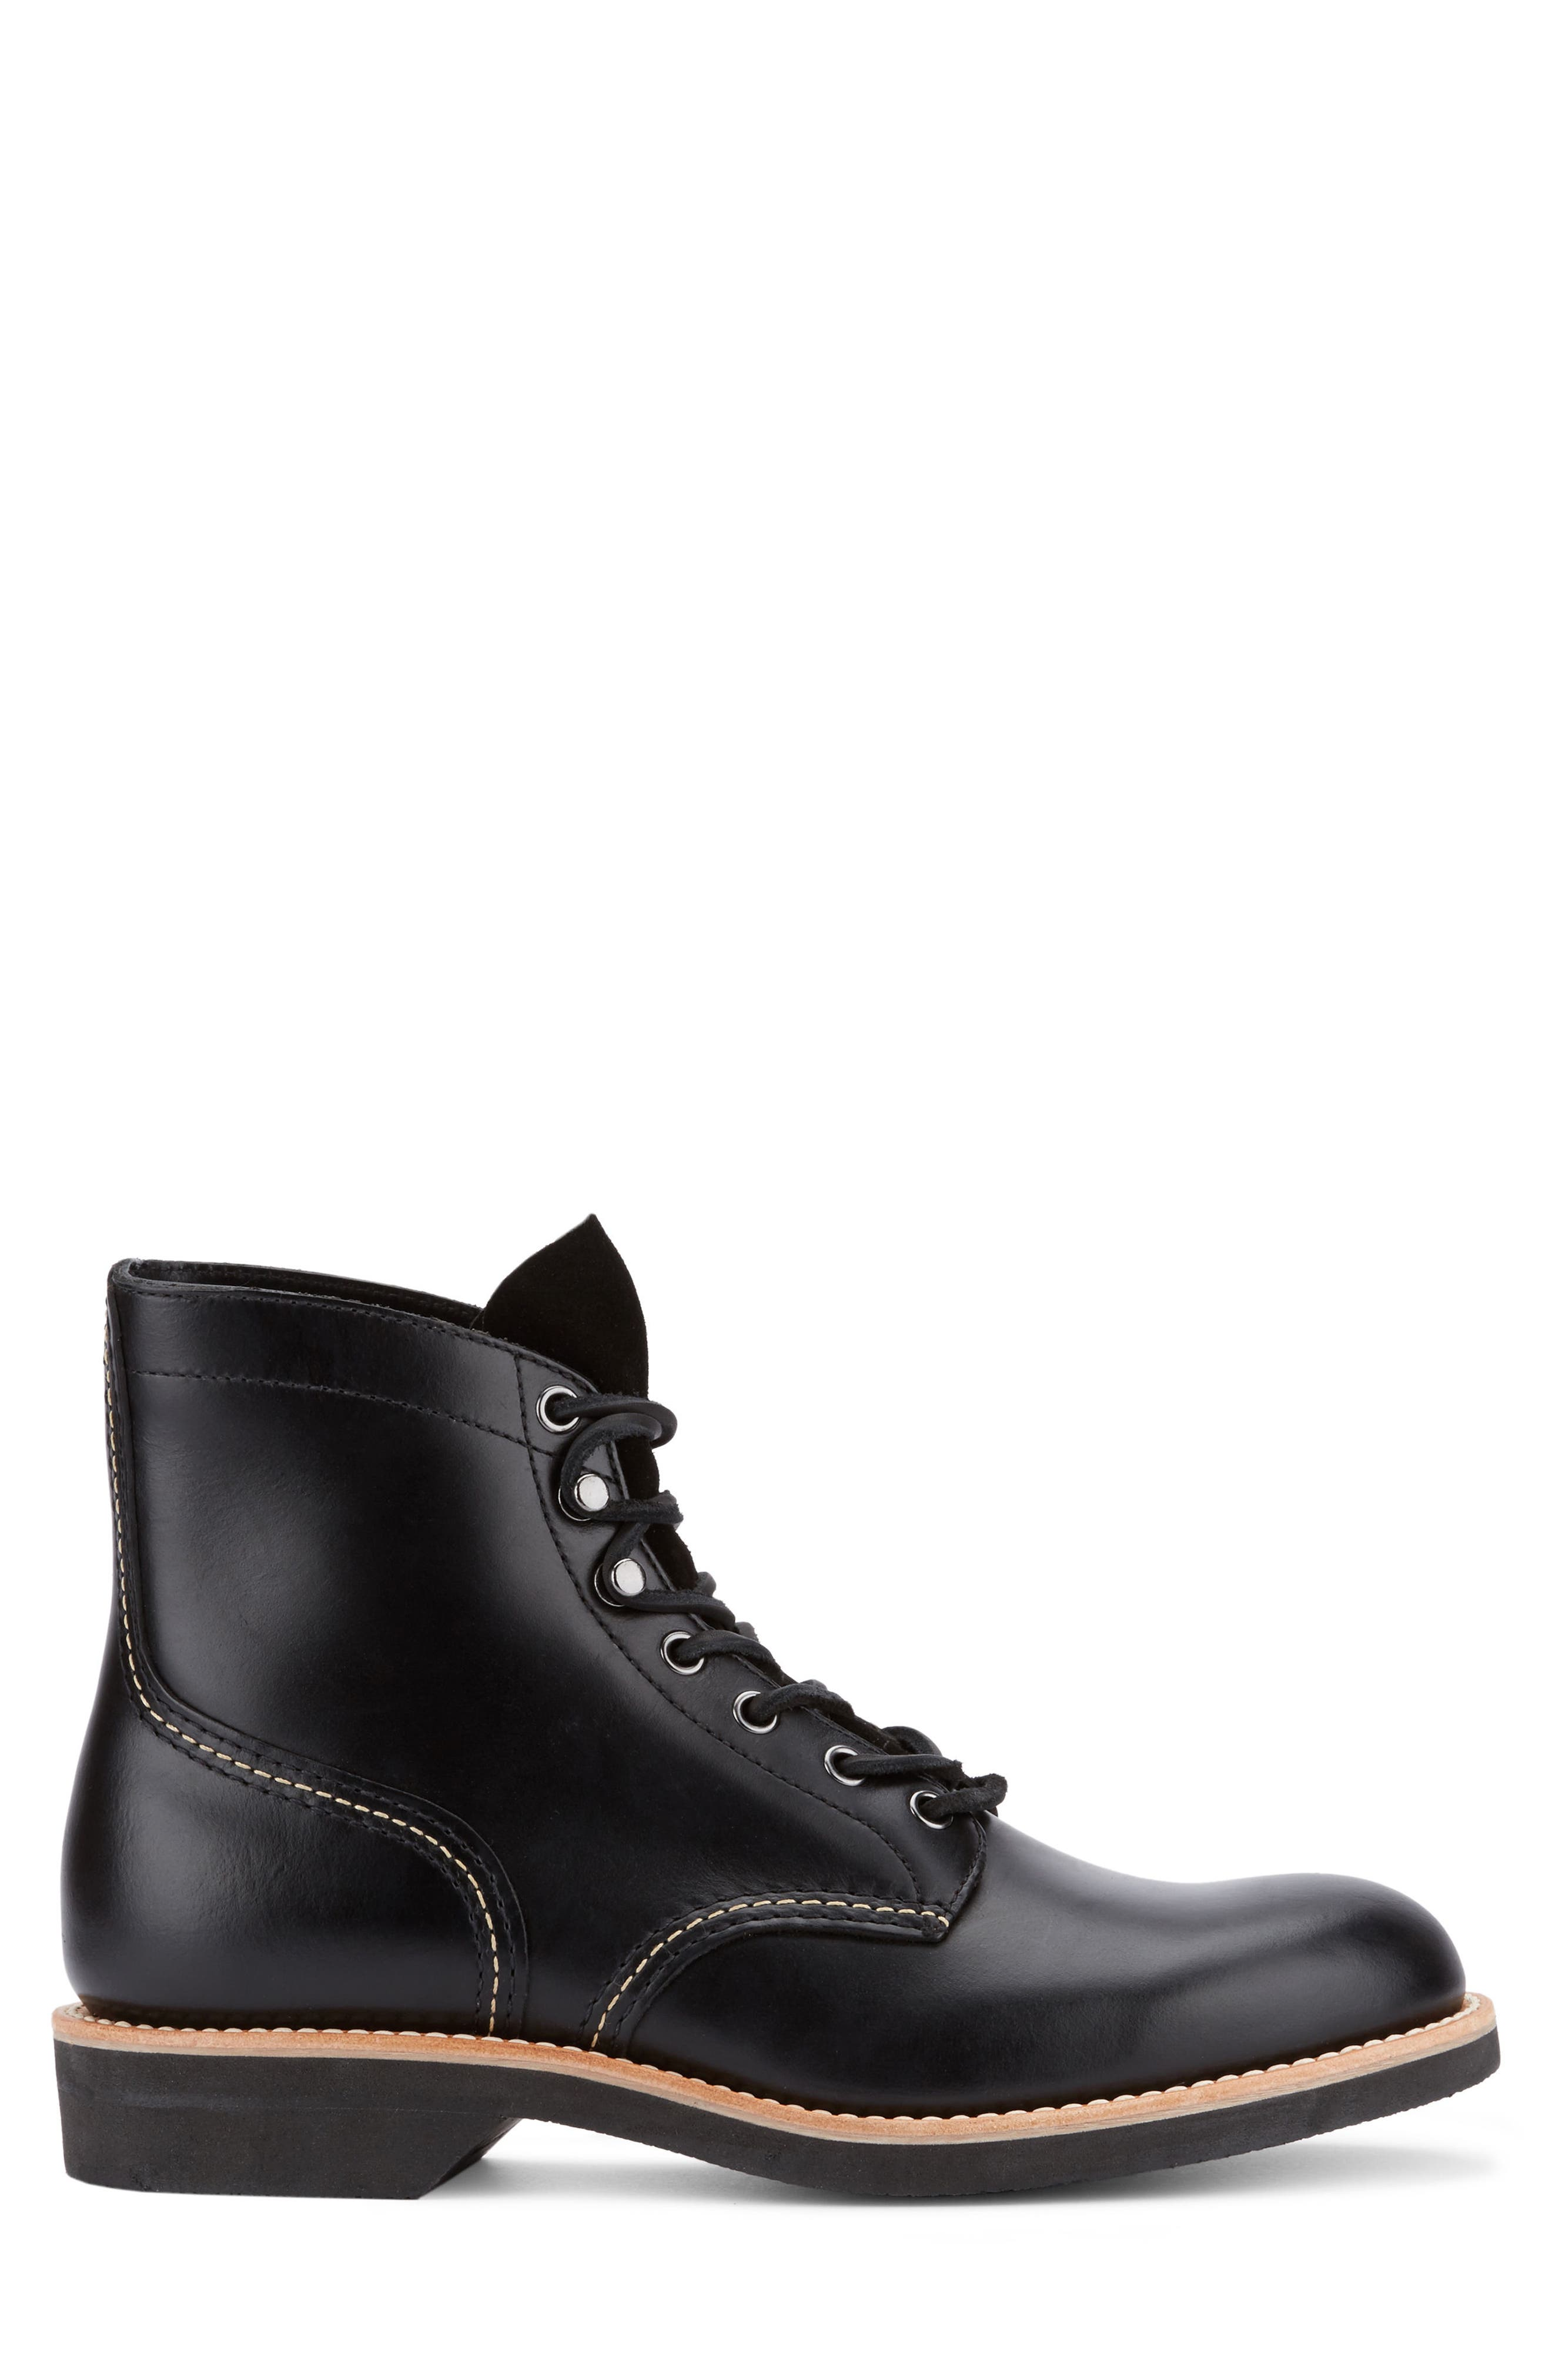 Reid Plain Toe Boot,                             Alternate thumbnail 5, color,